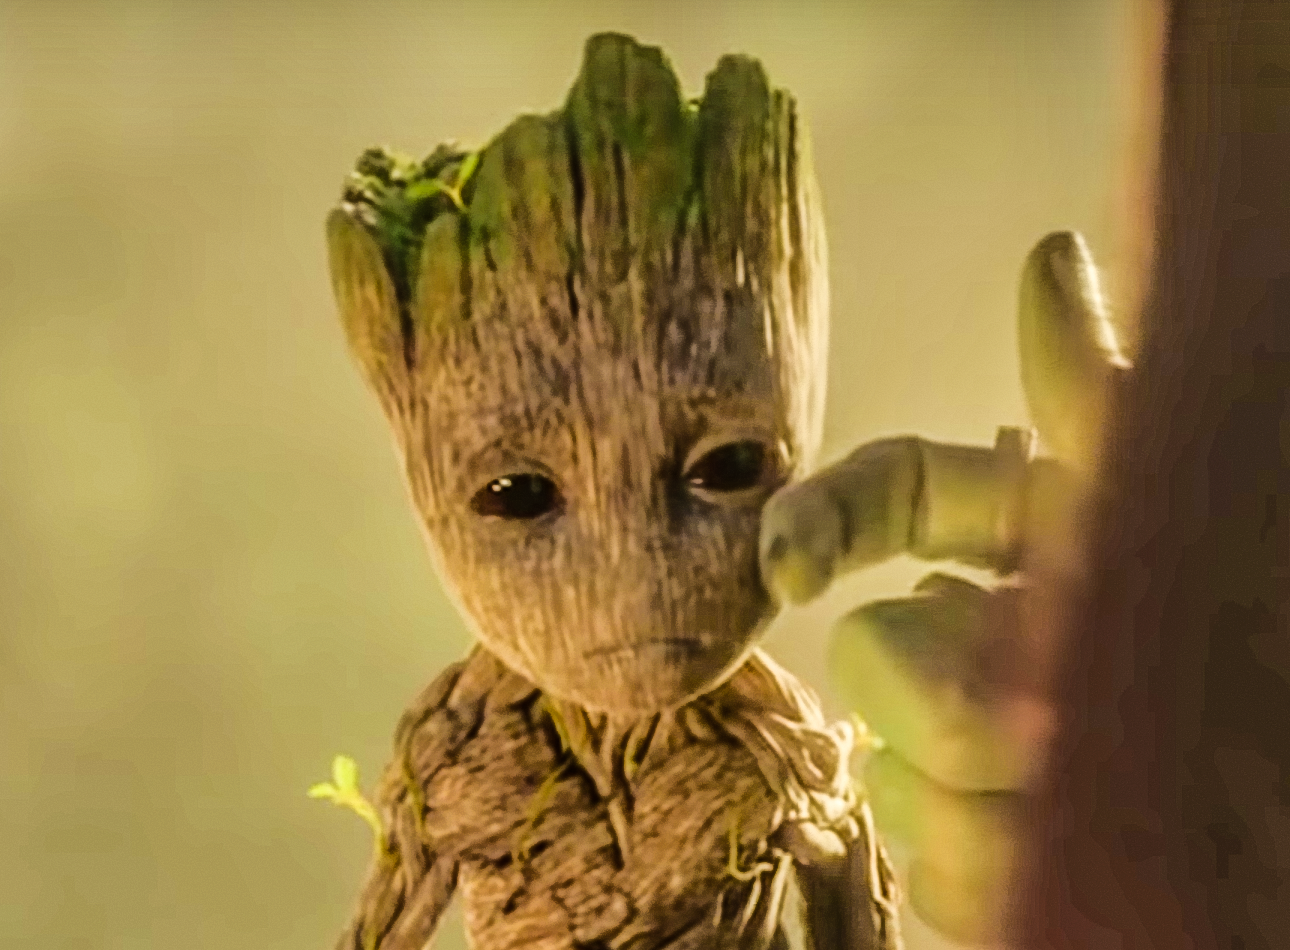 Even Groot goes capoot